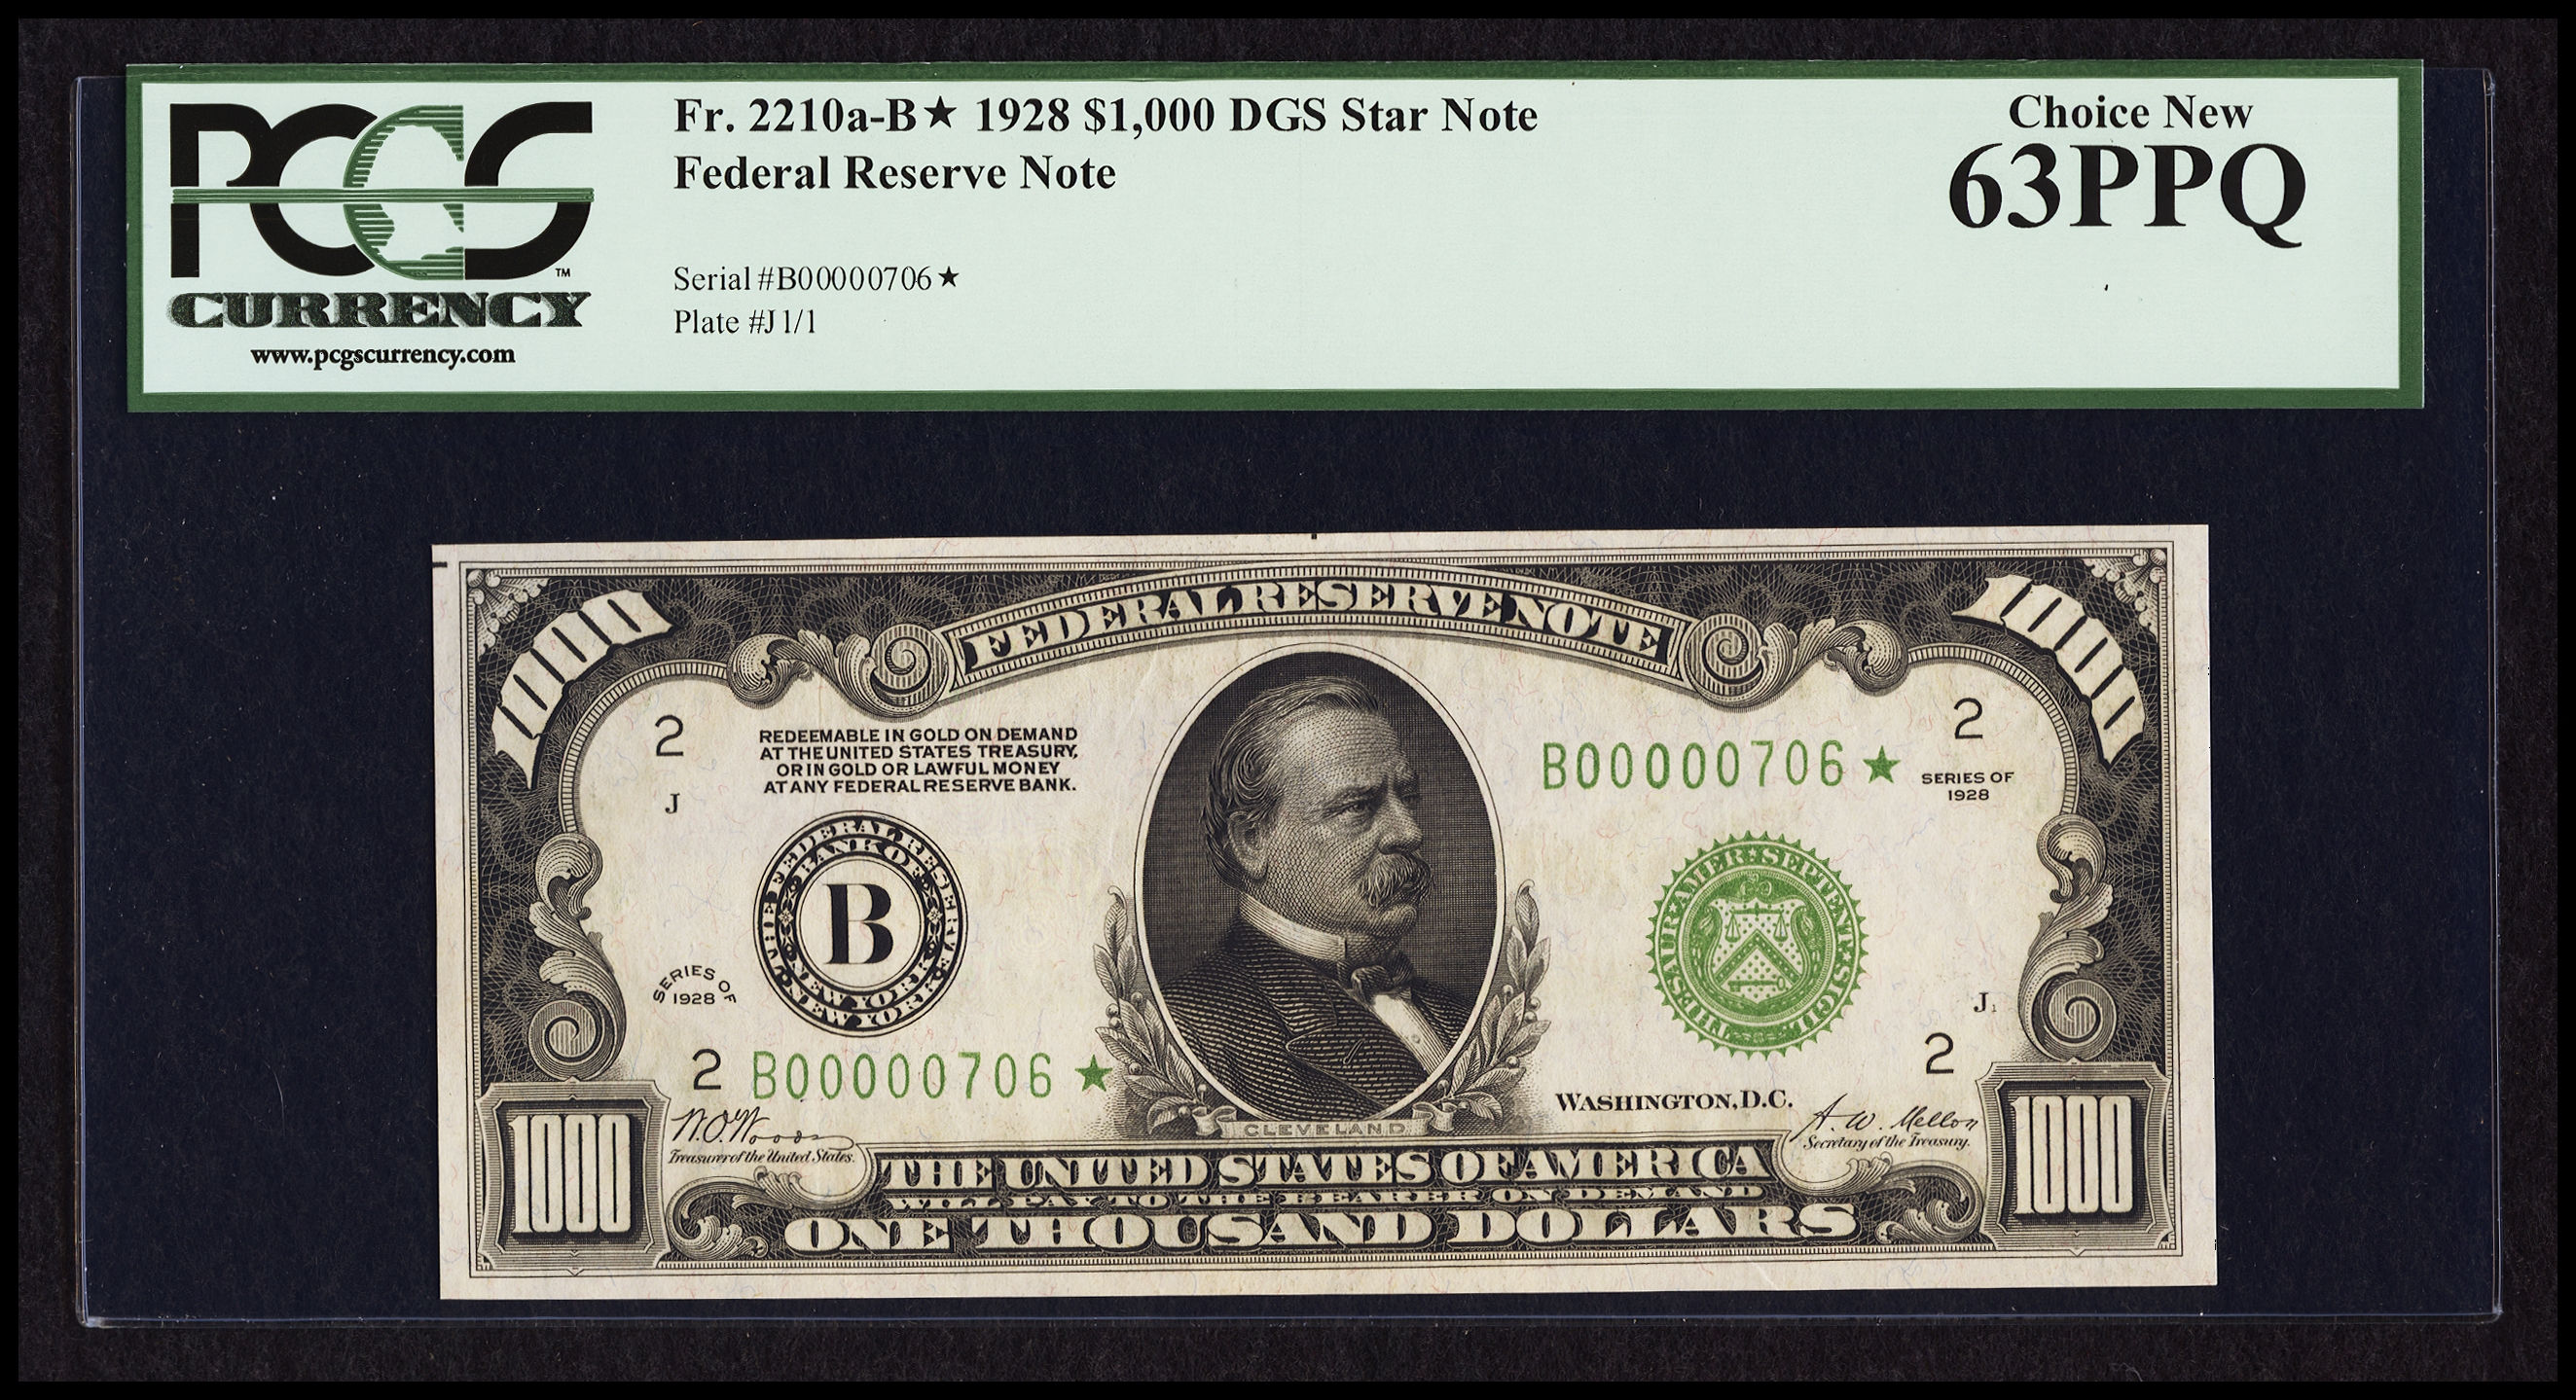 Fr. 2210a-B 1928 $1000 Federal Reserve Note, Dark Green Seal, Star Serial Number - Woods-Mellon, PCGS Choice New 63 PPQ